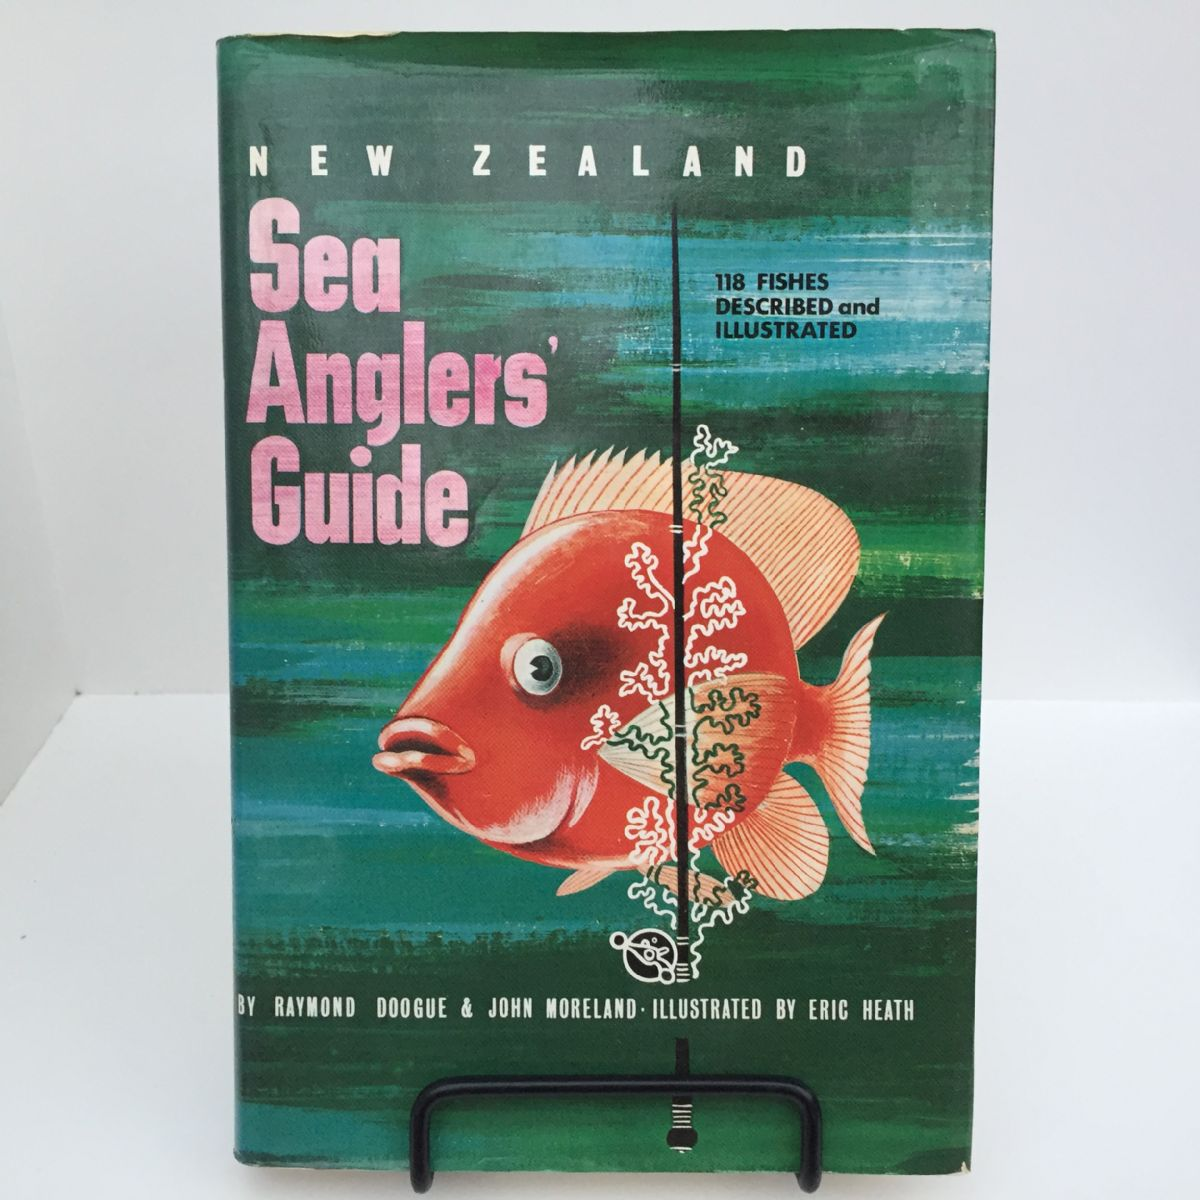 New Zealand Sea Anglers Guide